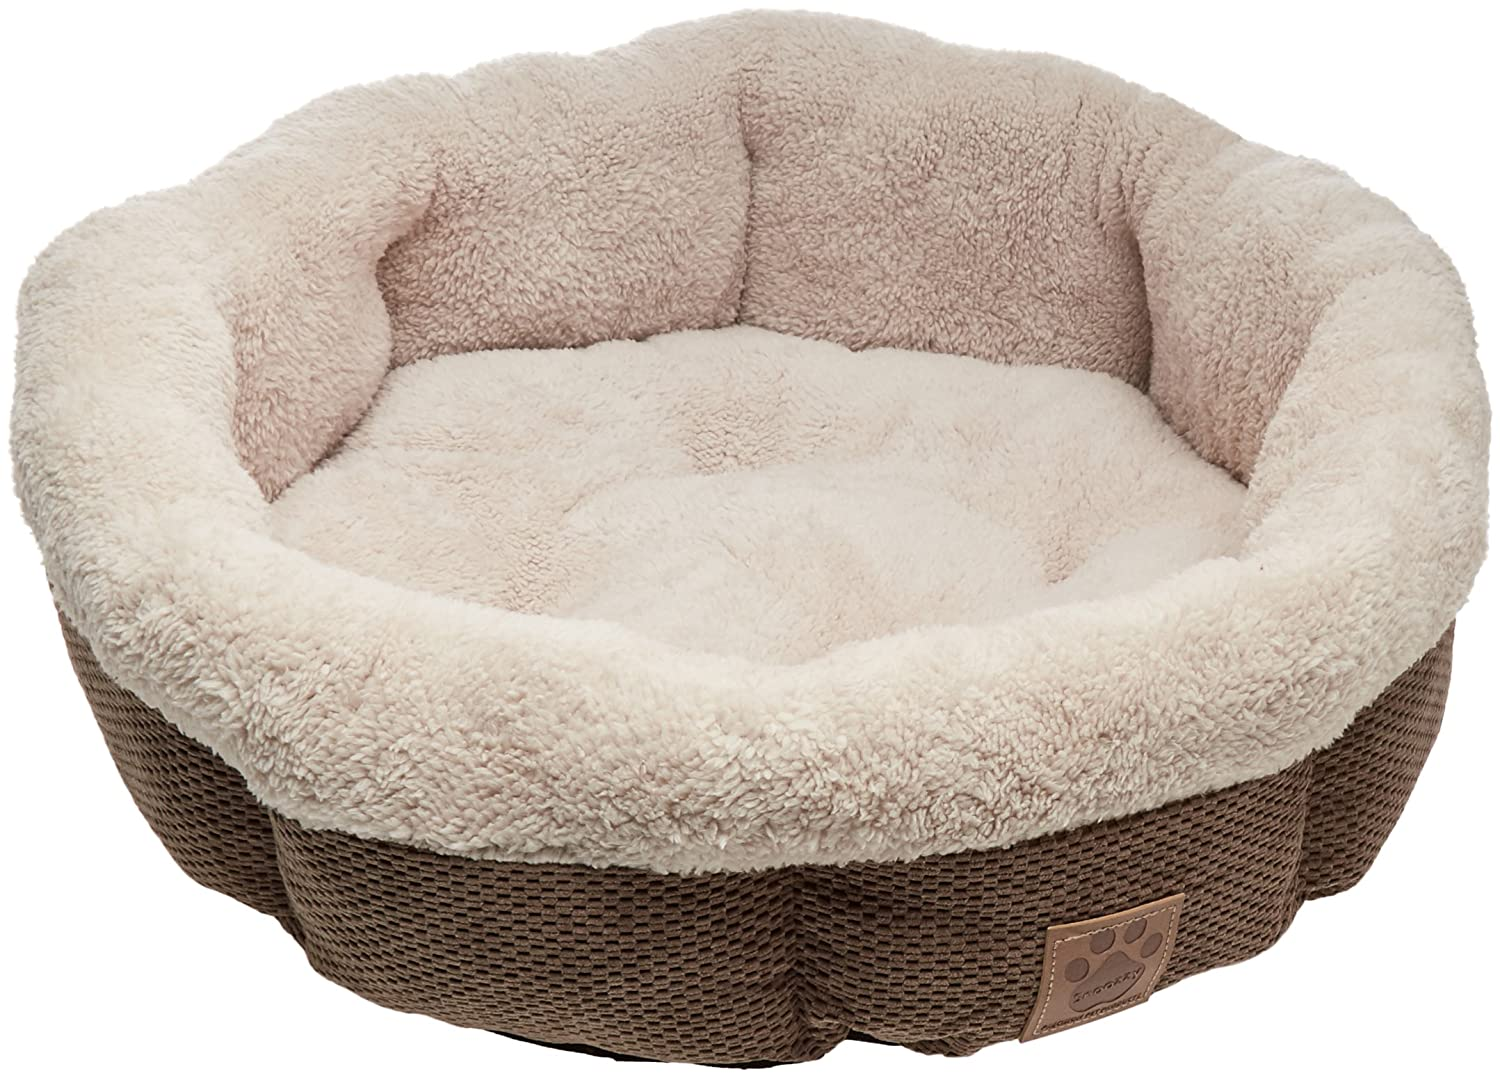 Top 10 Dog Beds And Furniture Products: Ease Of Use, Comfort & Convenience 4